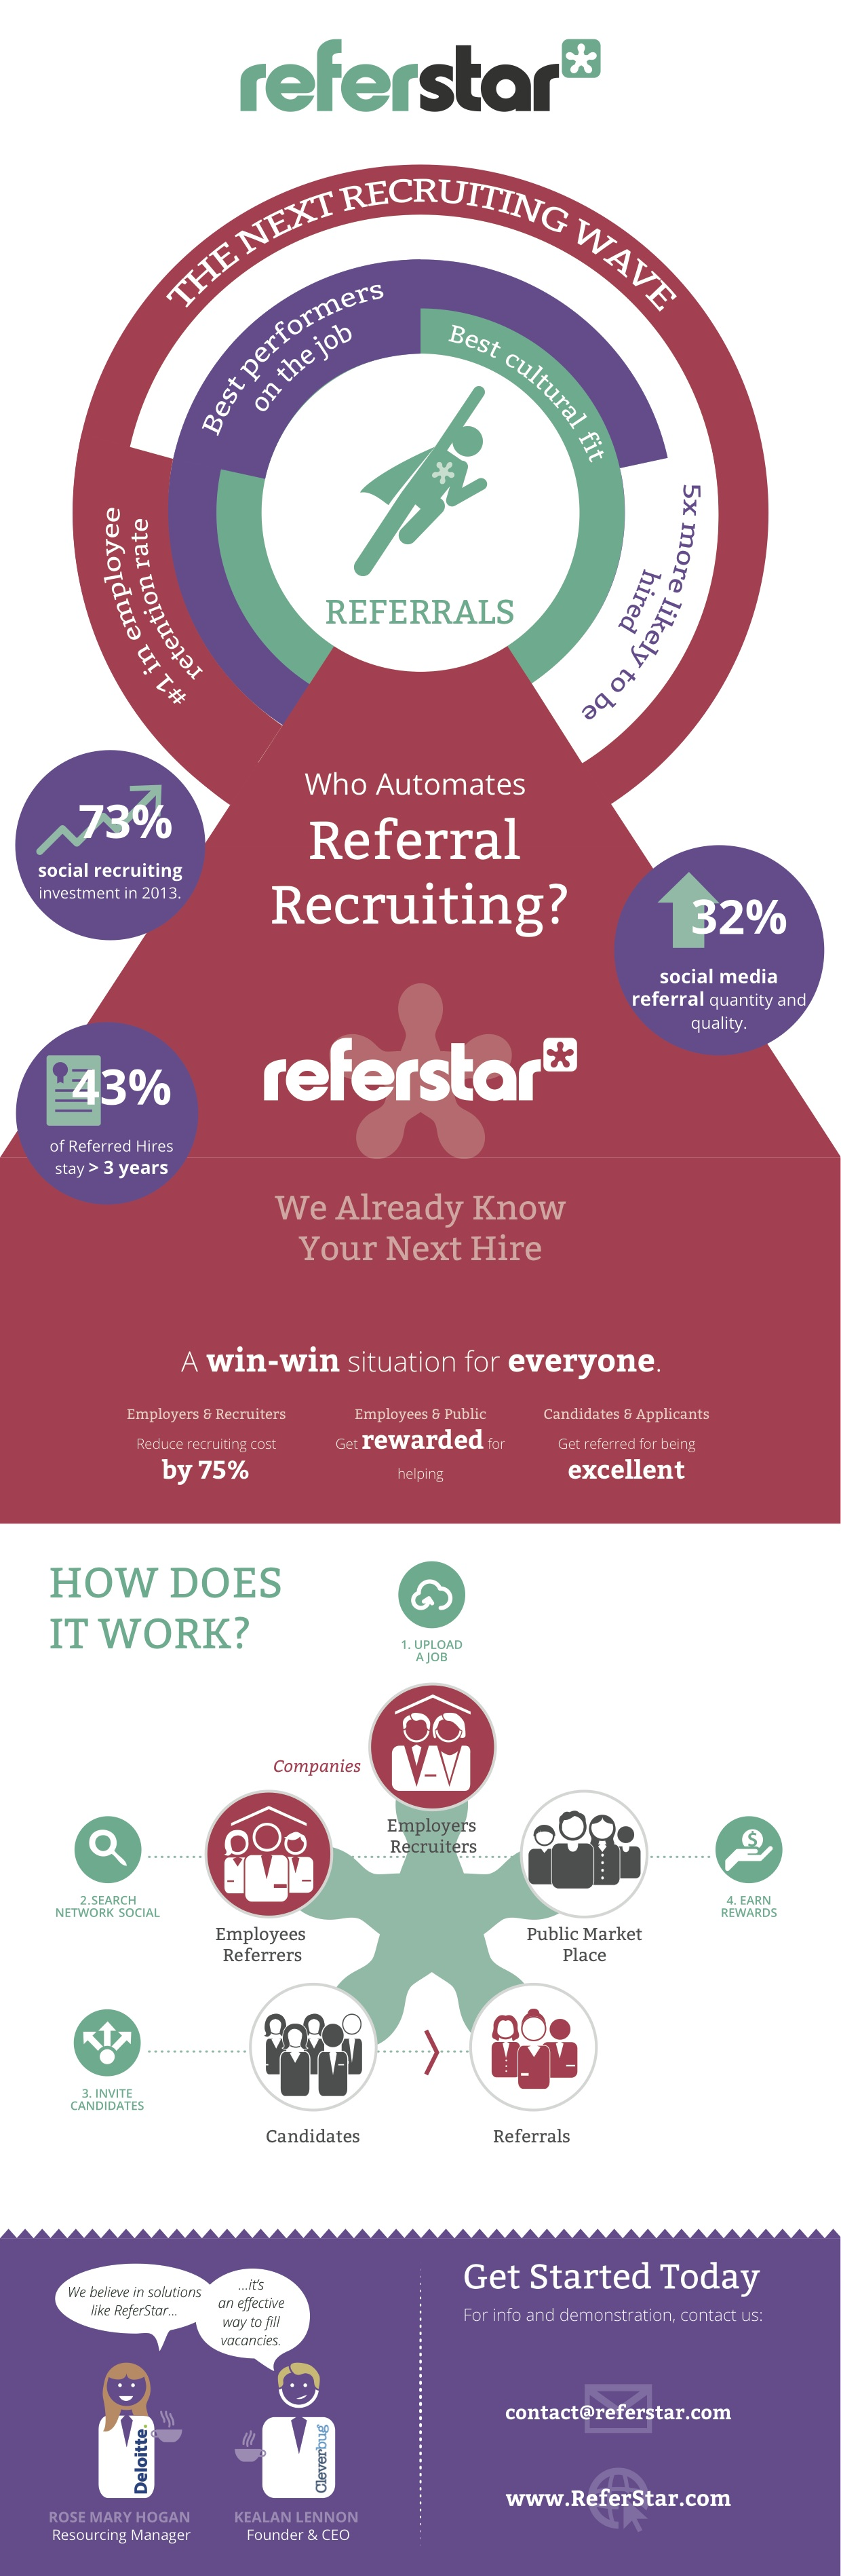 ReferStar Employer Infographic